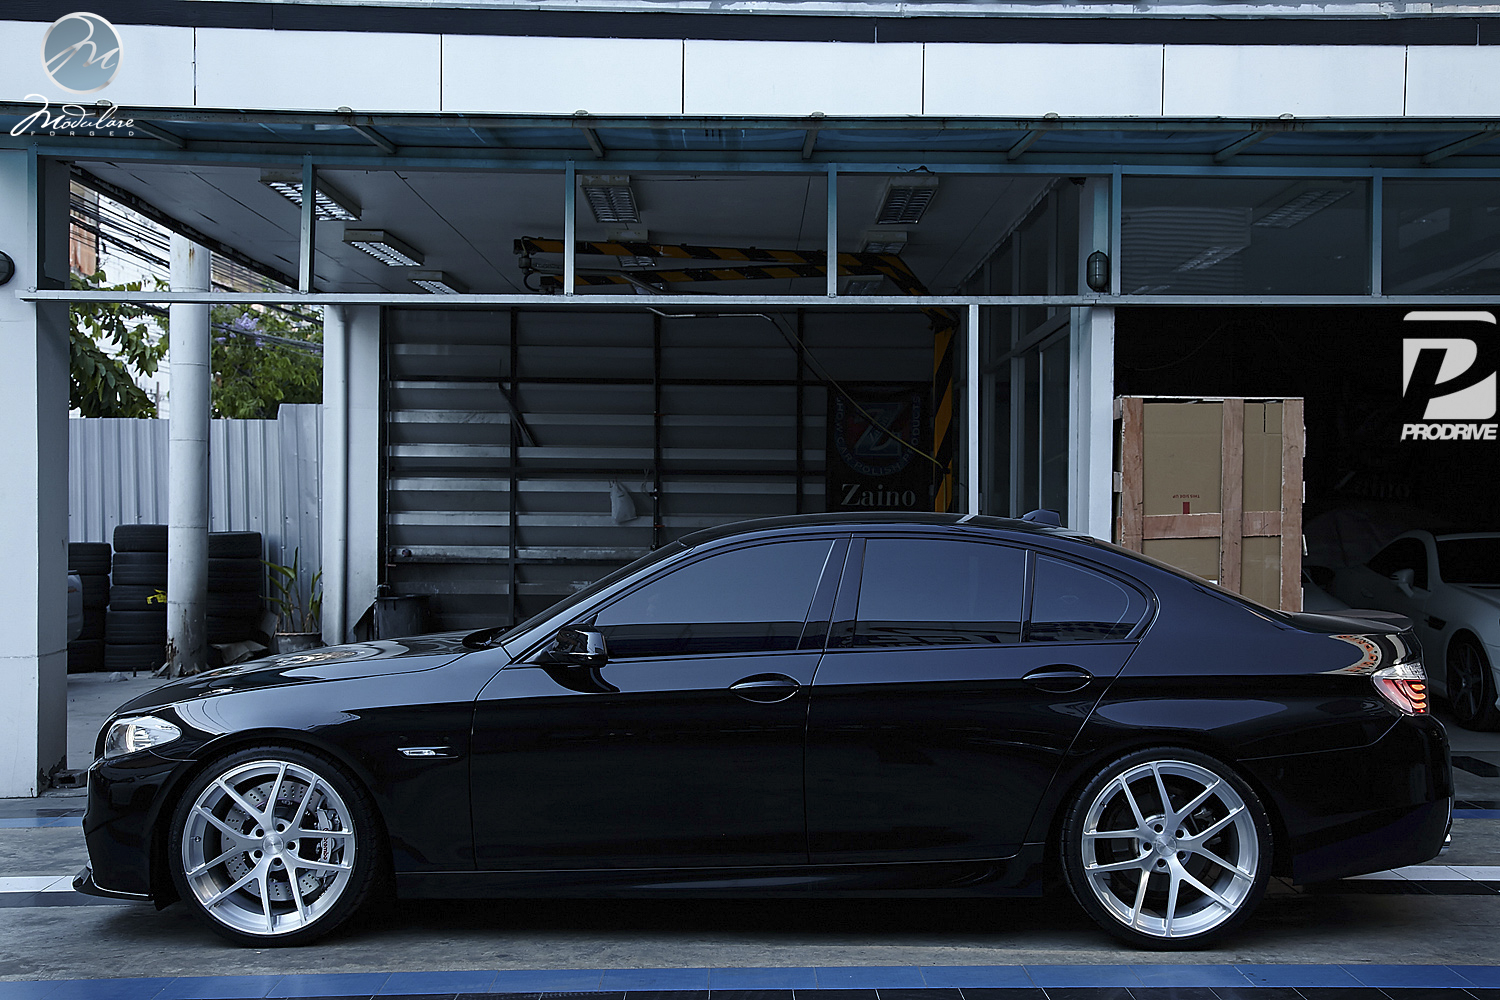 Modulare Wheels Prodrive Shop Bmw F10 5 Series 21